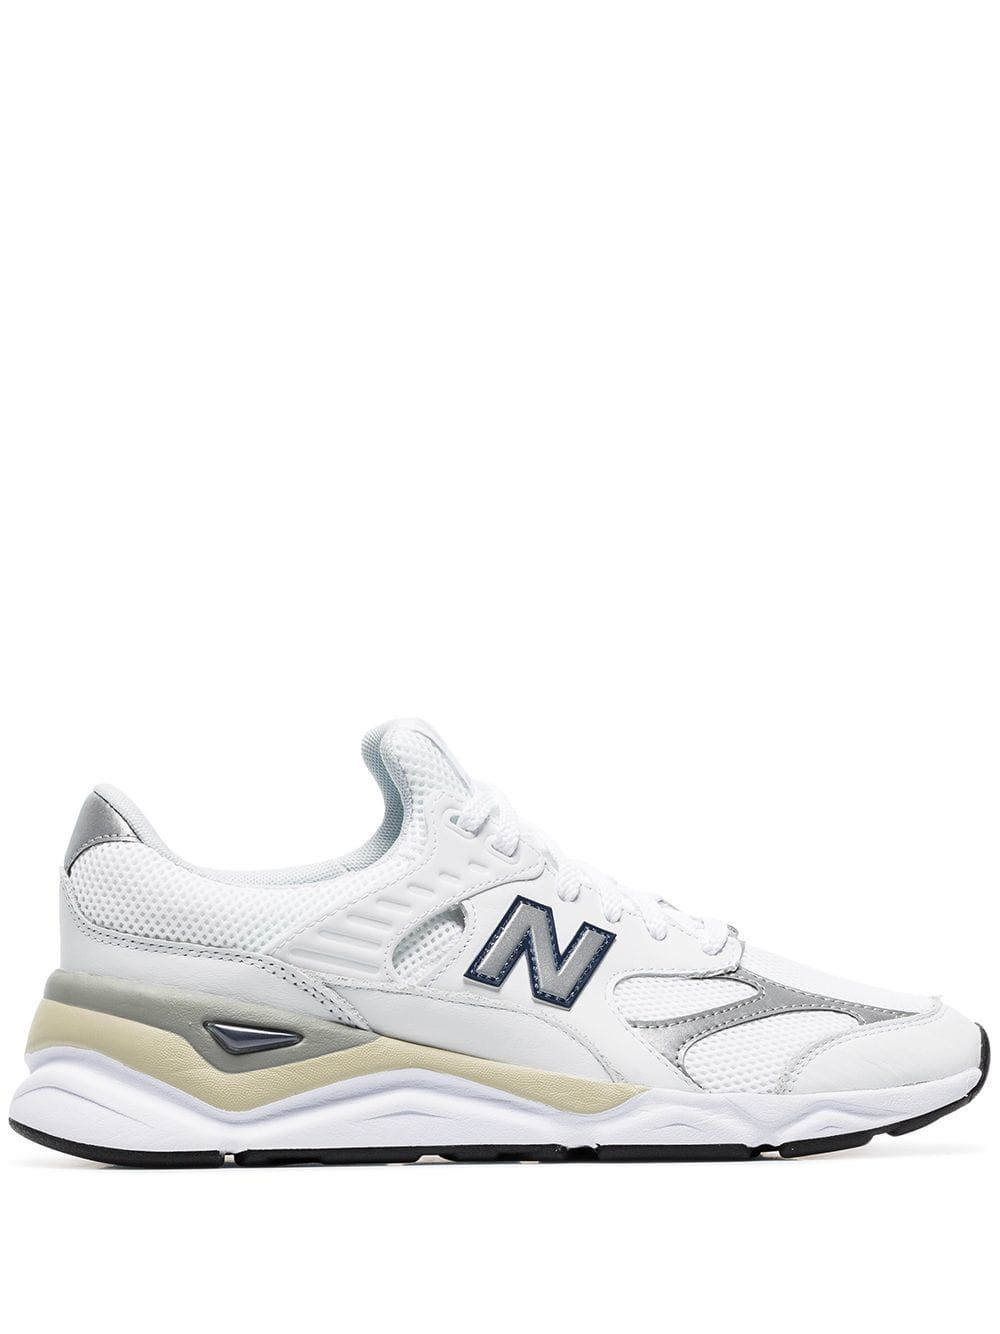 262c131c1e NEW BALANCE NEW BALANCE WHITE X90 LEATHER LOW-TOP SNEAKERS ...